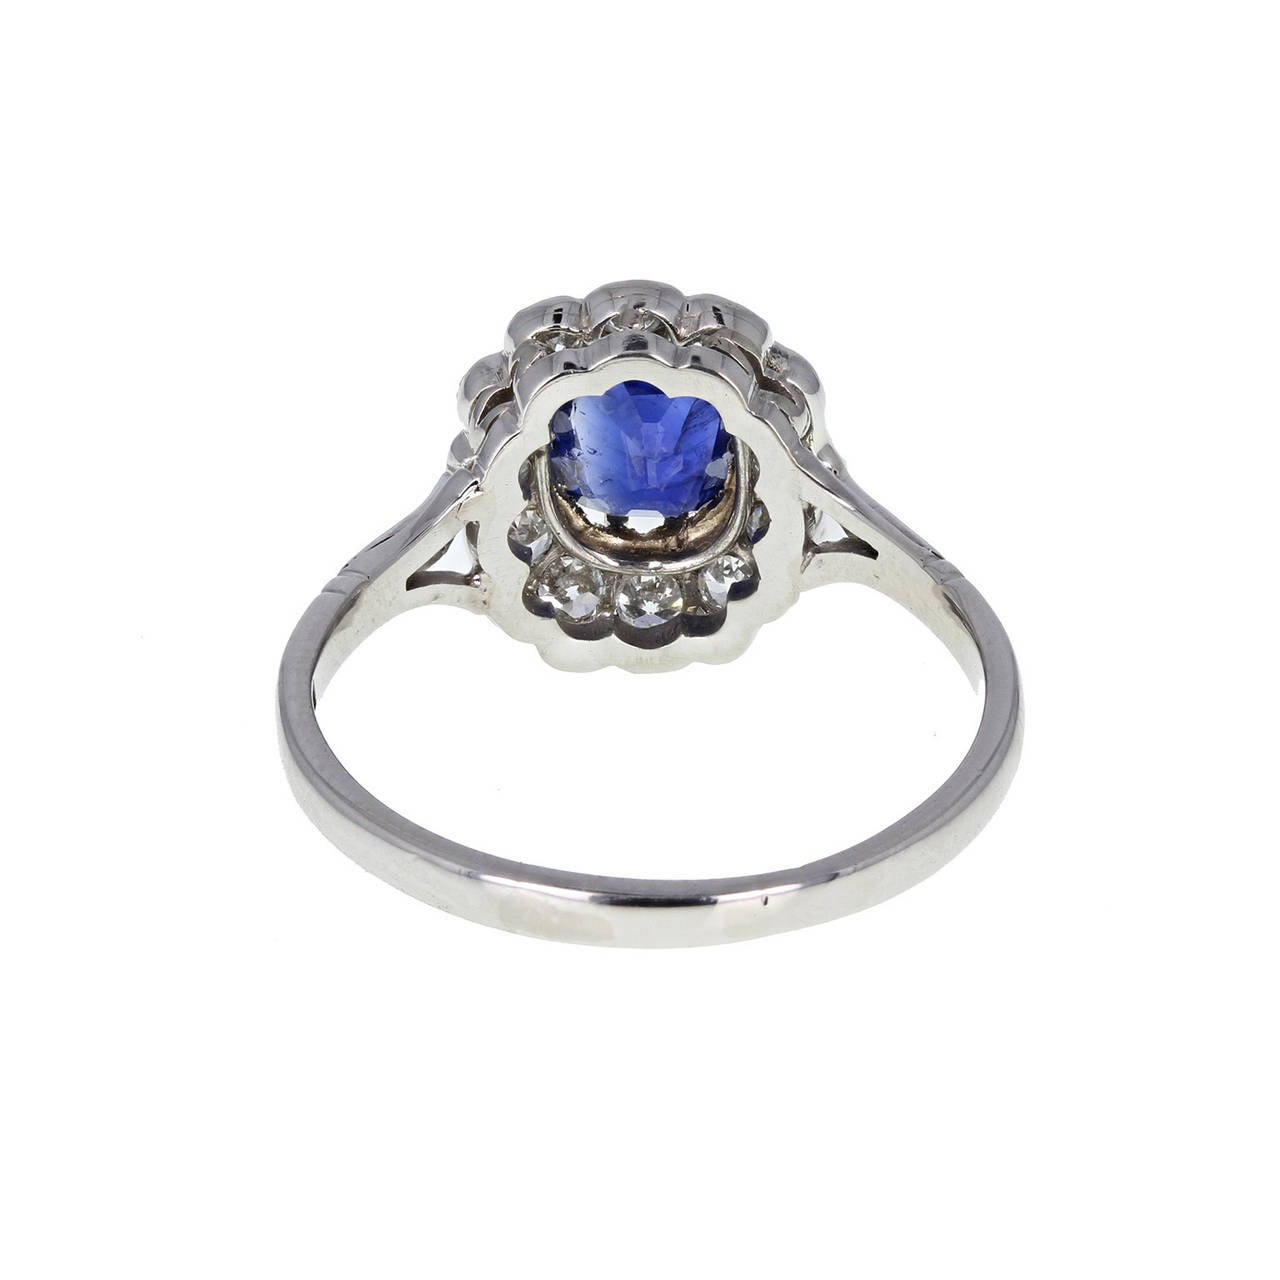 This outstanding cluster ring features a central oval-cut blue sapphire of deep, velvety blue, surrounded by old-cut diamonds to form an oval cluster. Trifurcated shoulders and uniform shank stamped 'plat'. A GCS certificate accompanies the sapphire